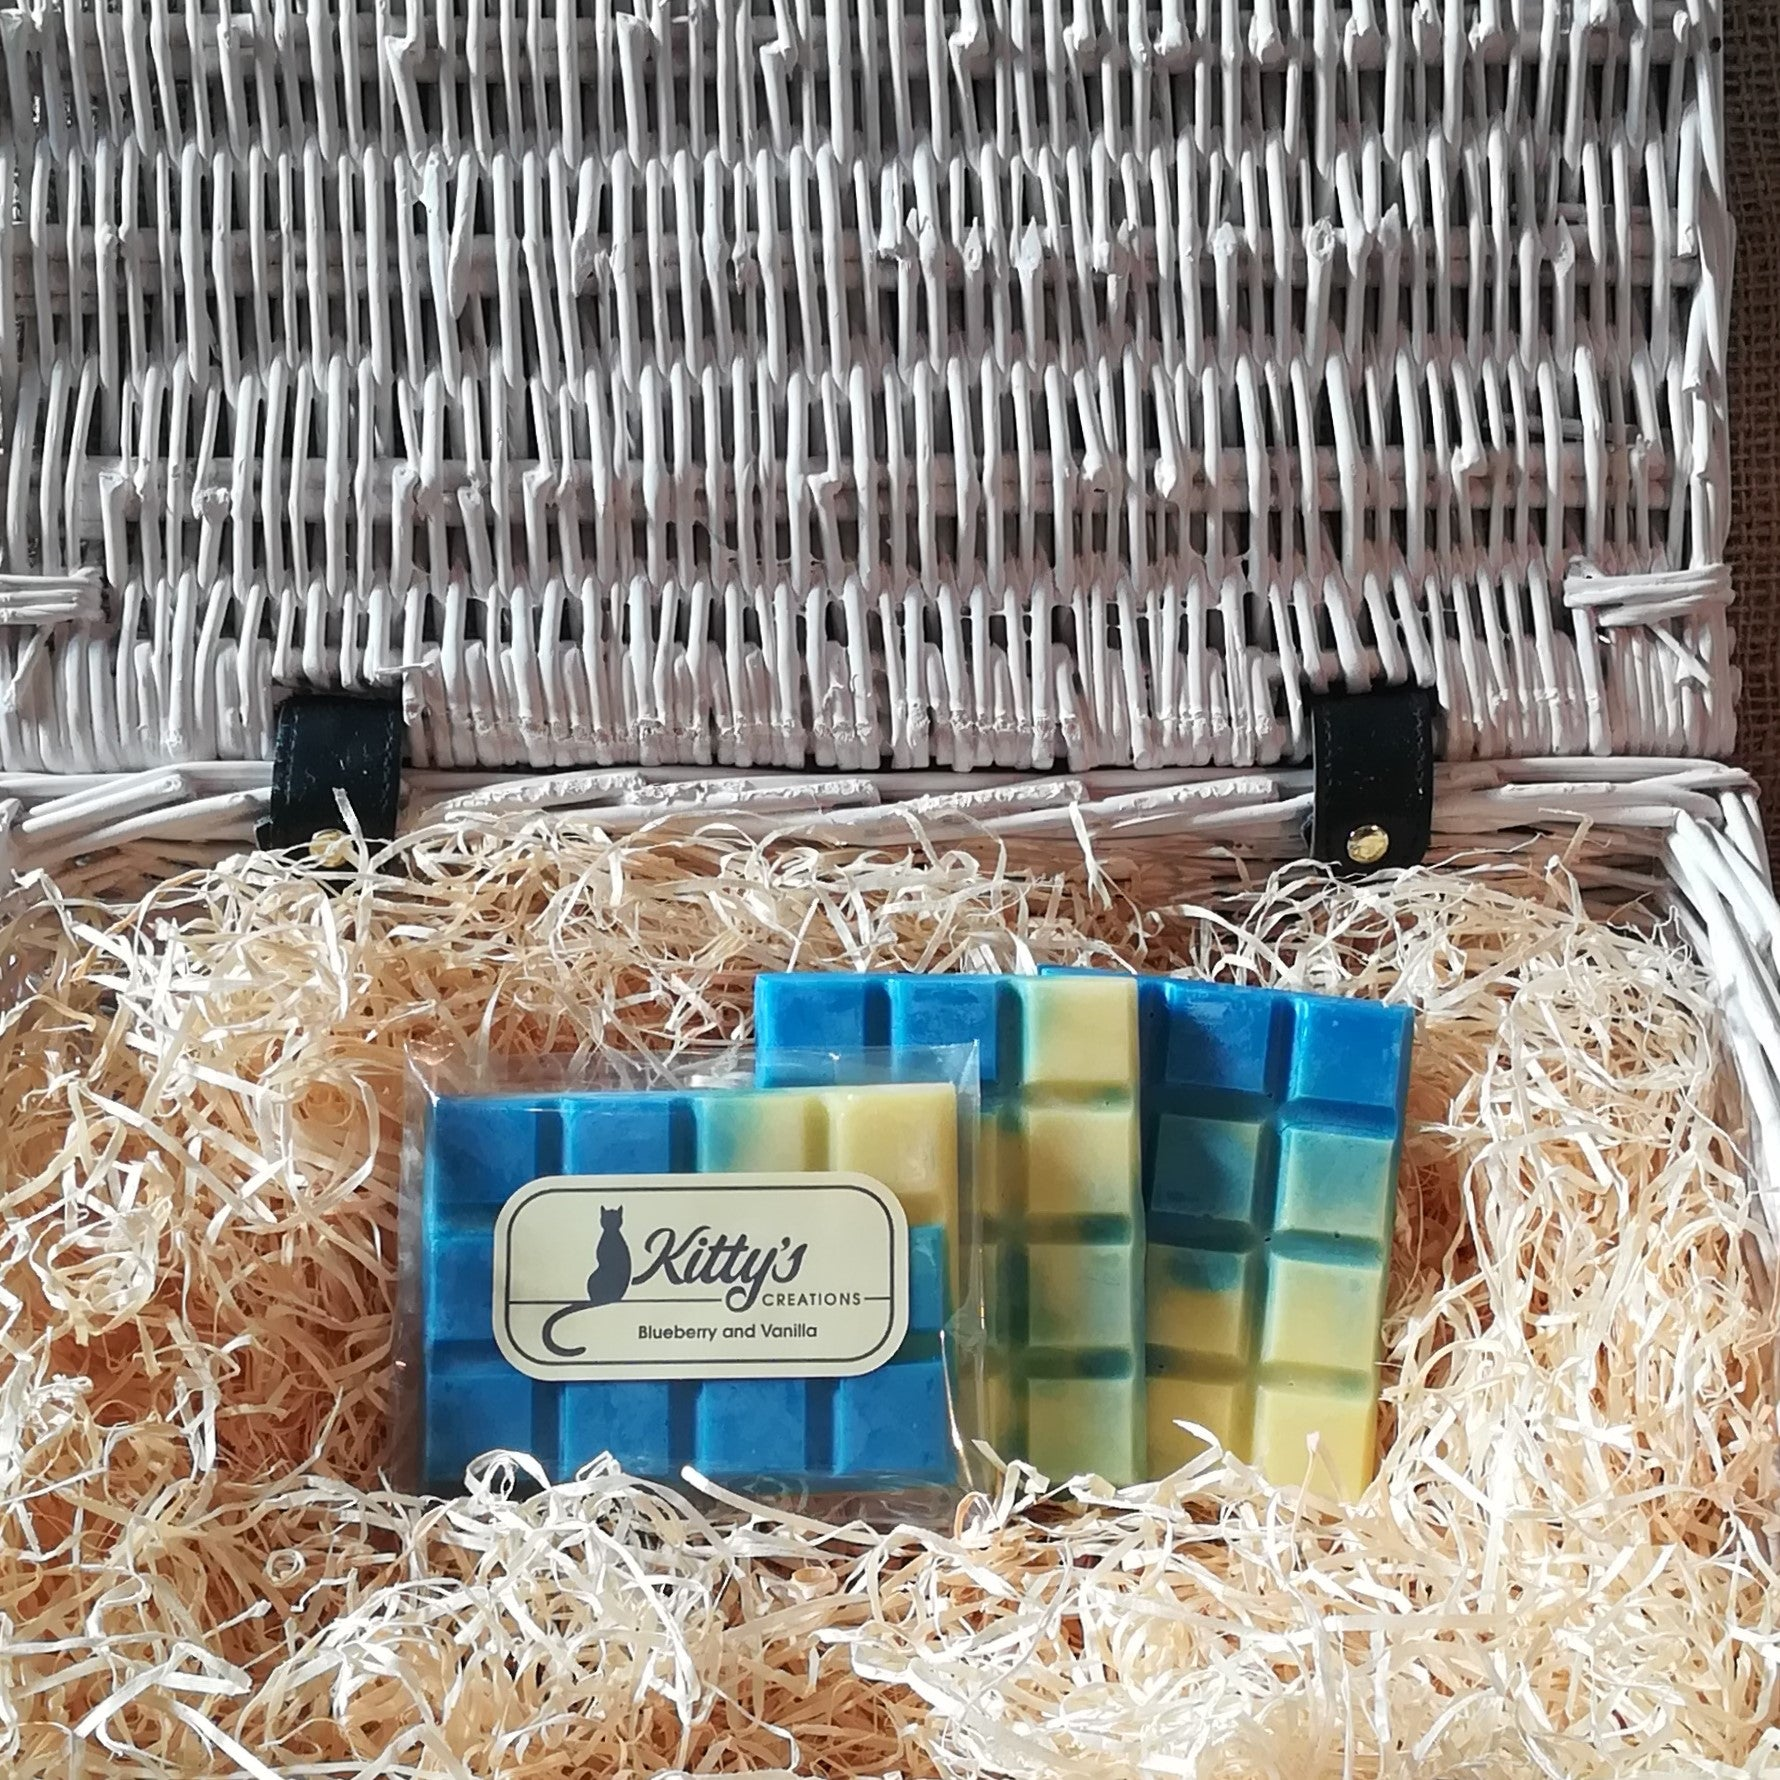 Three hand-made rectangular Wax Melts. Each is blended from dark blue to pale yellow, coloured to show the succulent balance of aromas within. Each melt is resting in a basket of straw and scented to stimulate your taste buds.